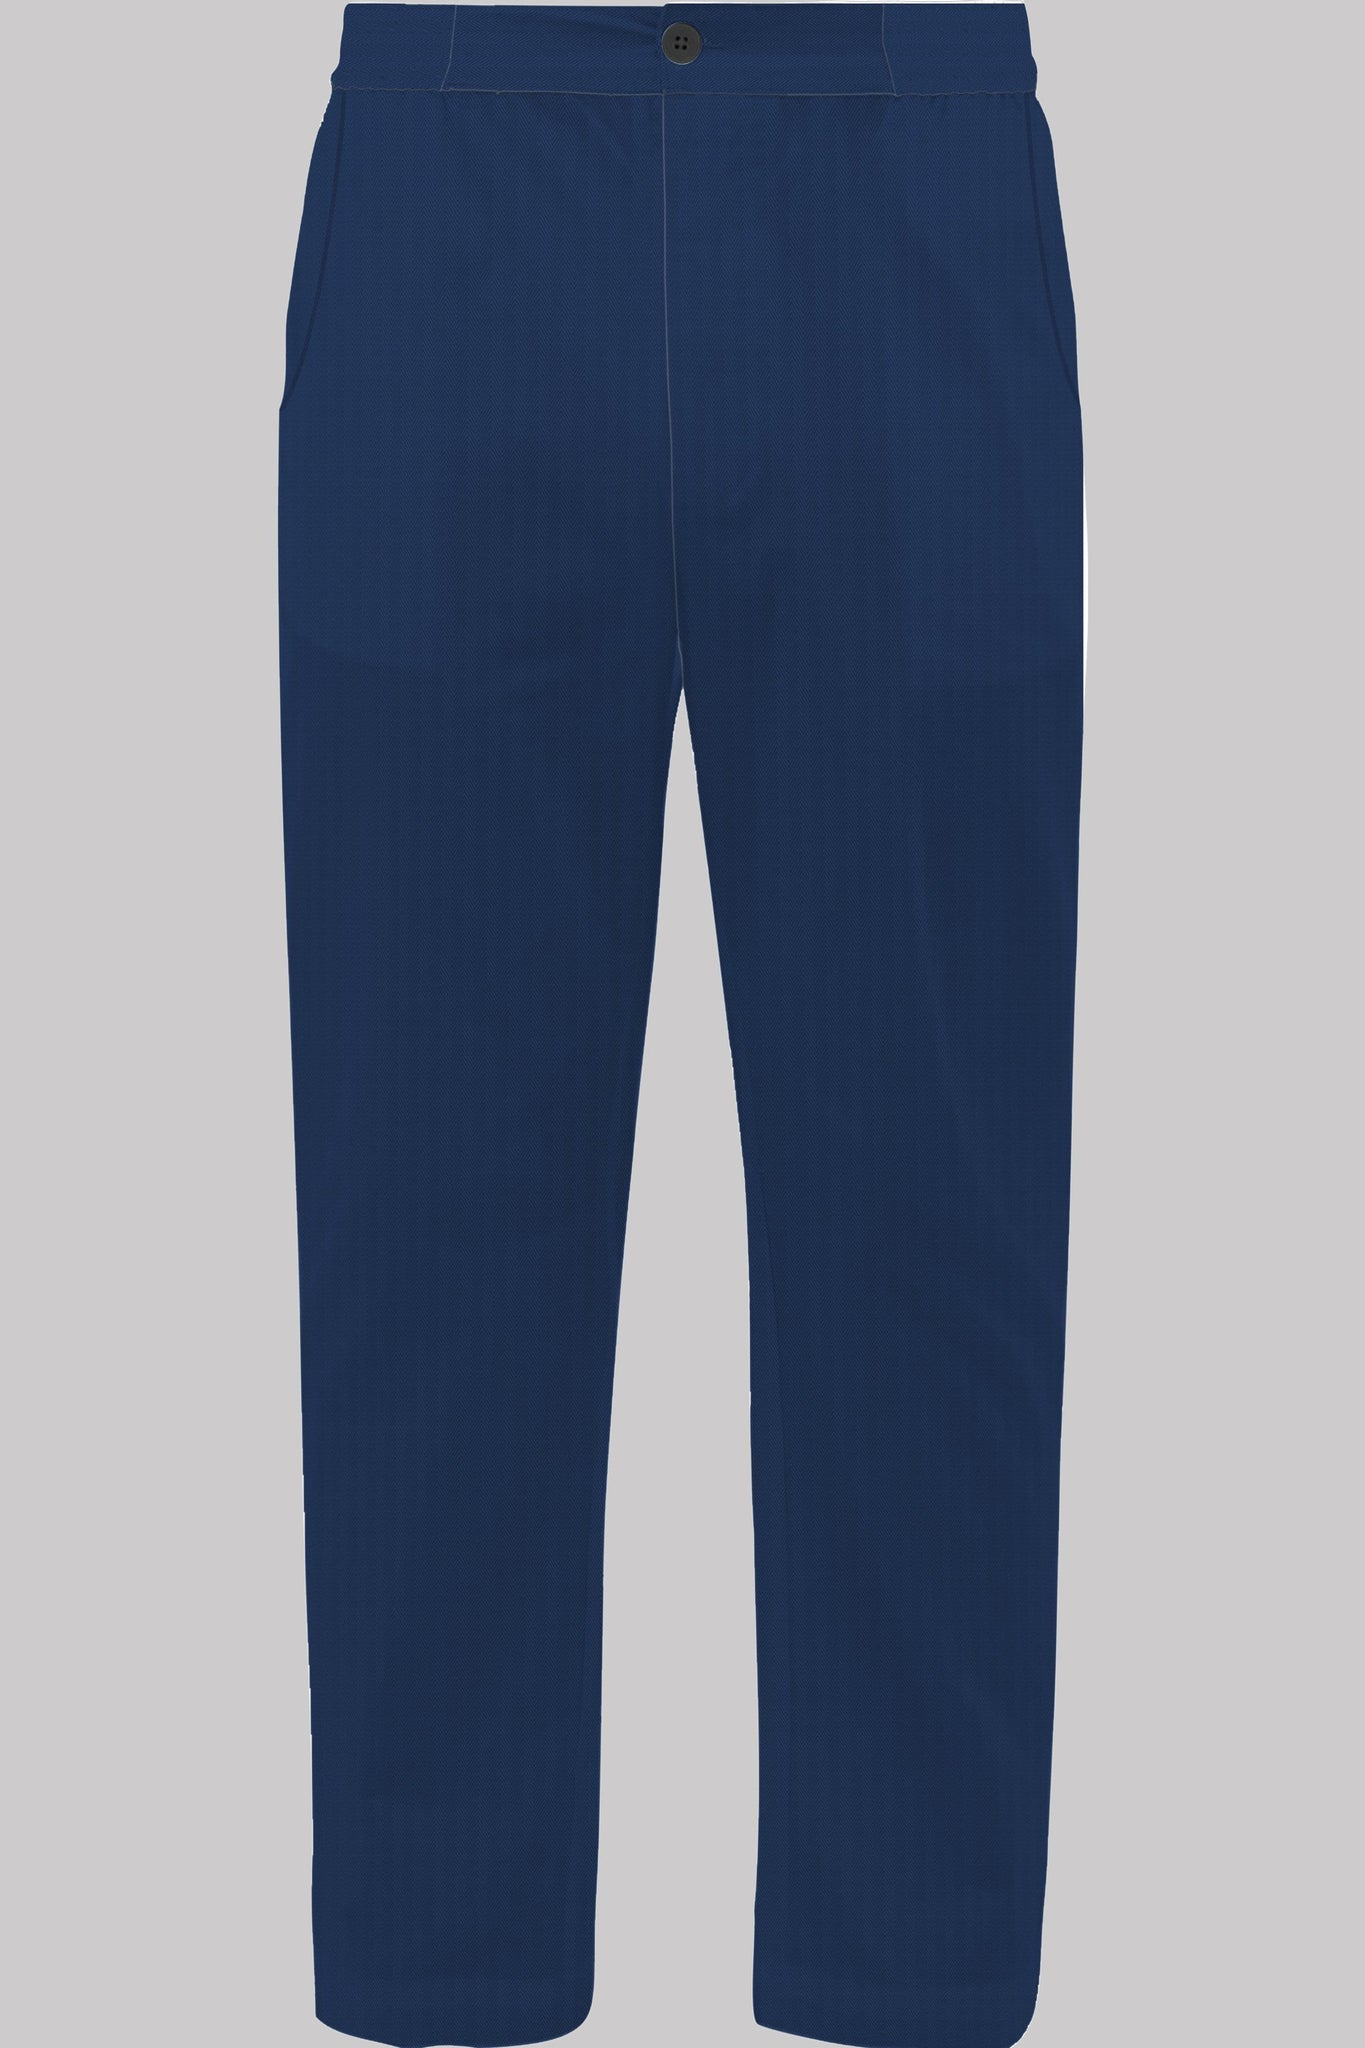 8636 BUTTON-TROUSERS Colour & Piping       100%ᴾᵁᴿᴱ COTTON Herringbone-THICK       NAVY       French Alps 1934